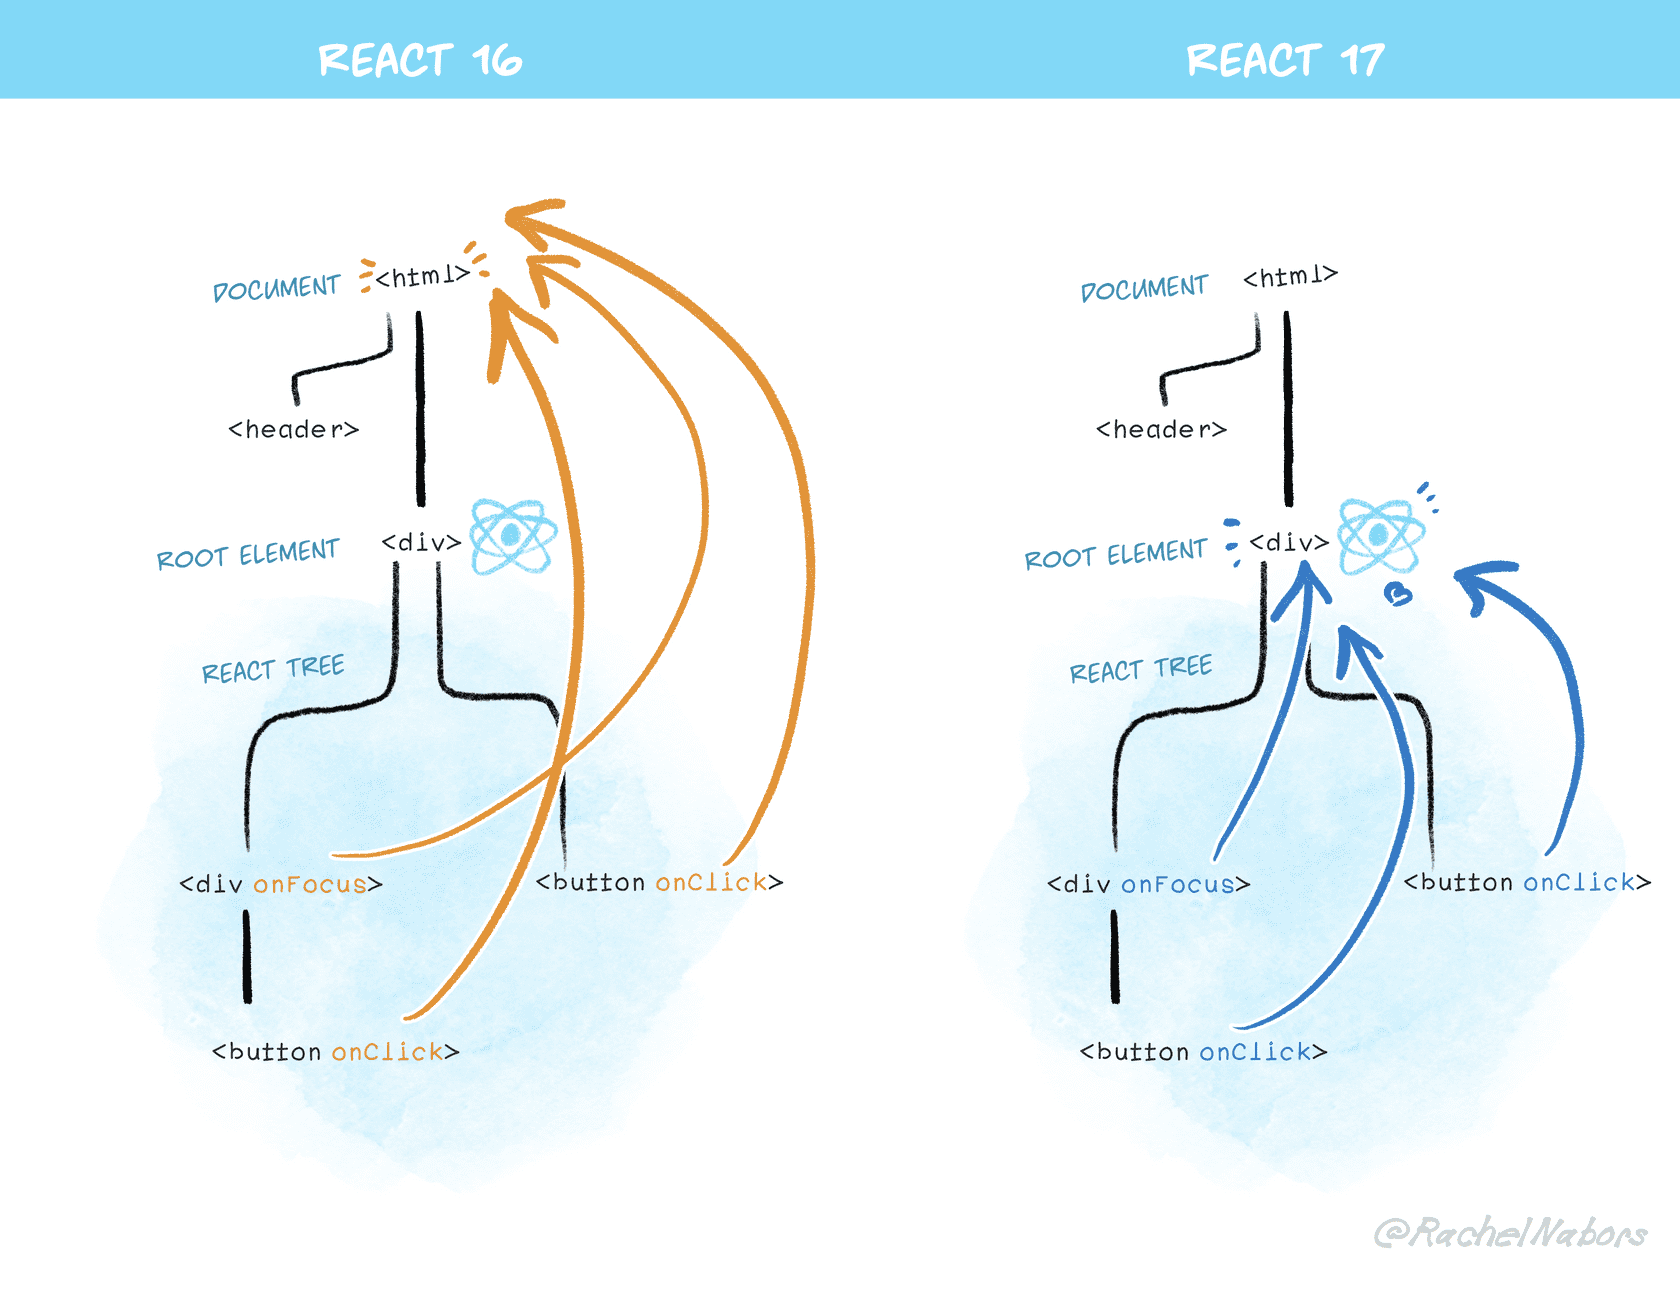 React 17 is our stepping stone